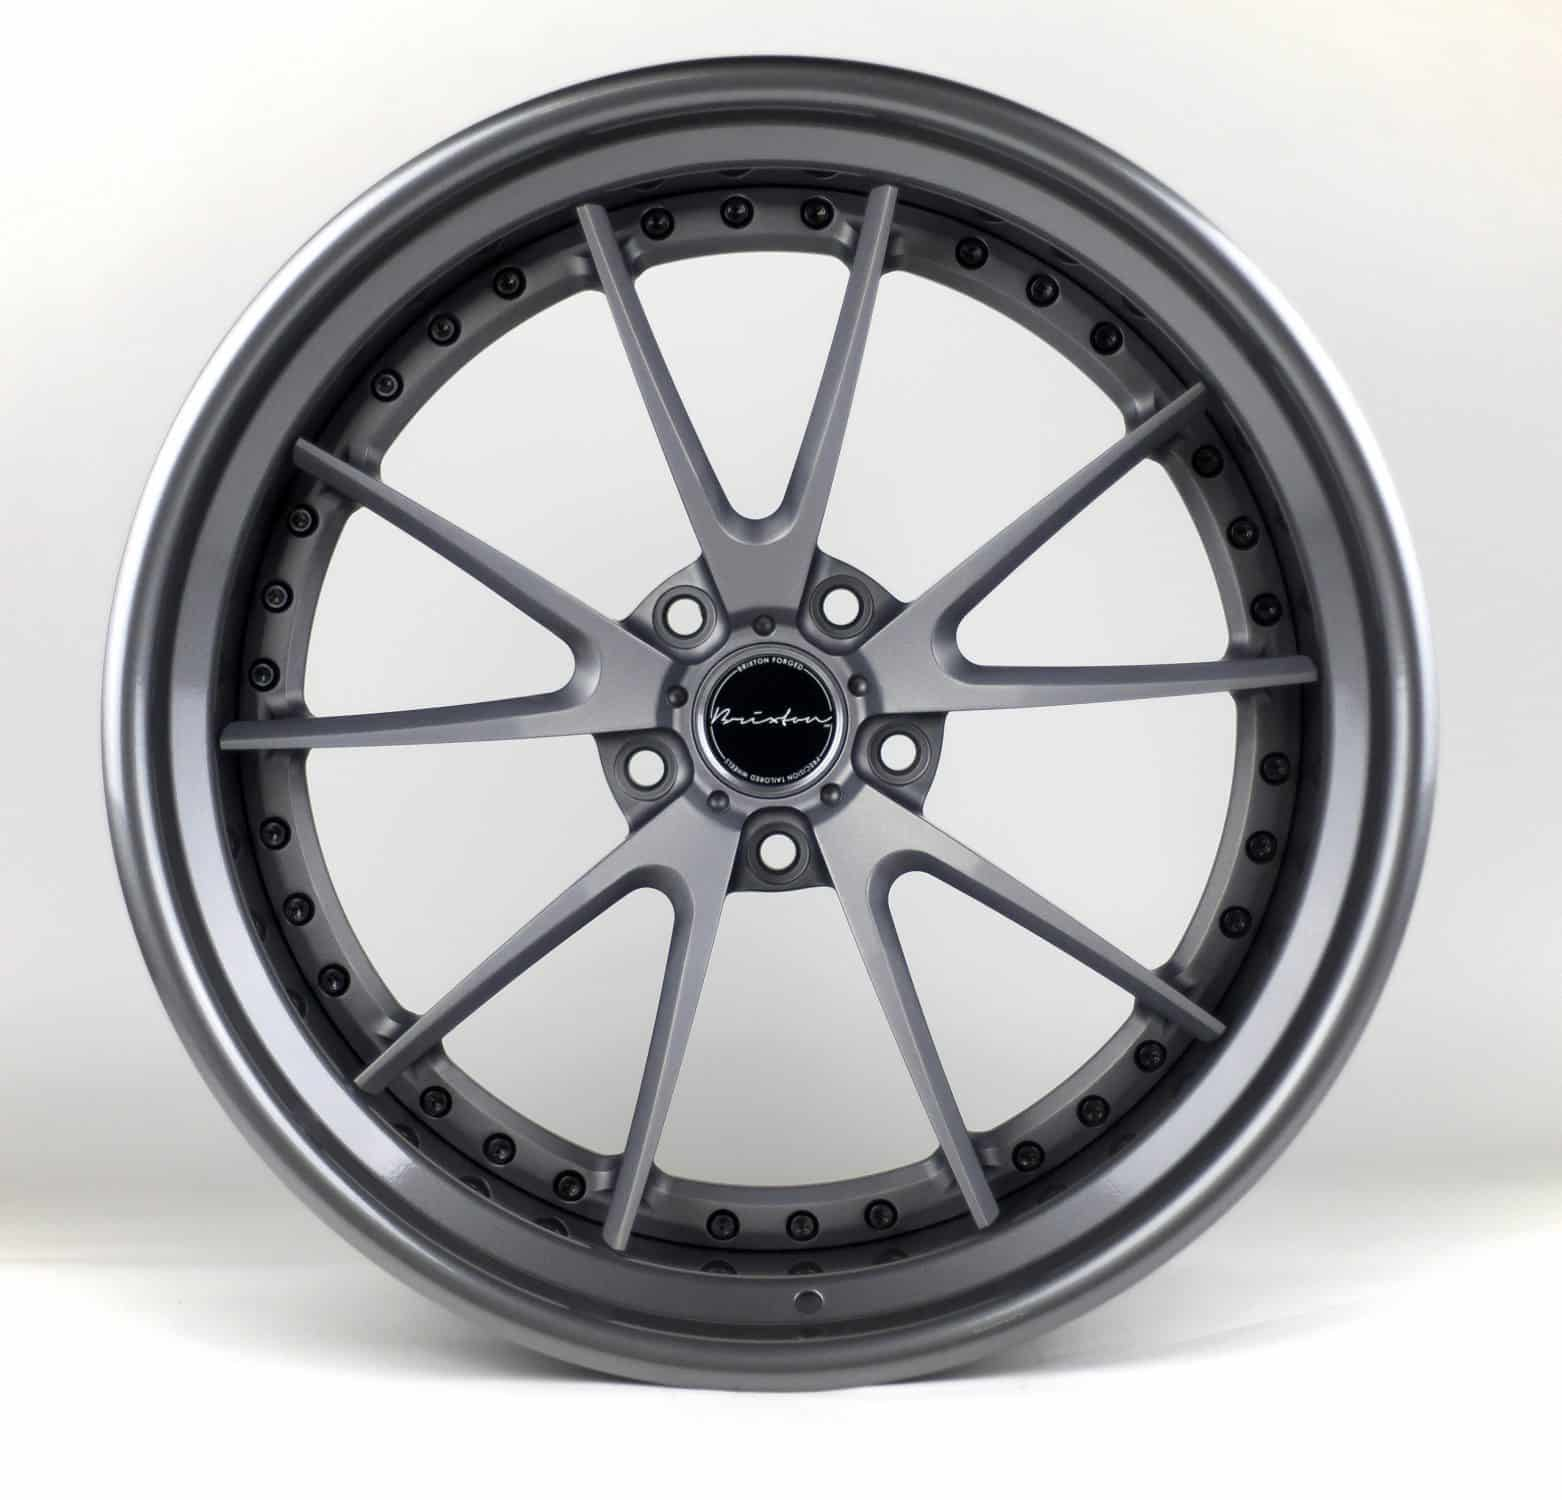 brixton-forged-wr3-targa-series-concave-forged-wheels-20-inch-gunmetal-titanium.jpg